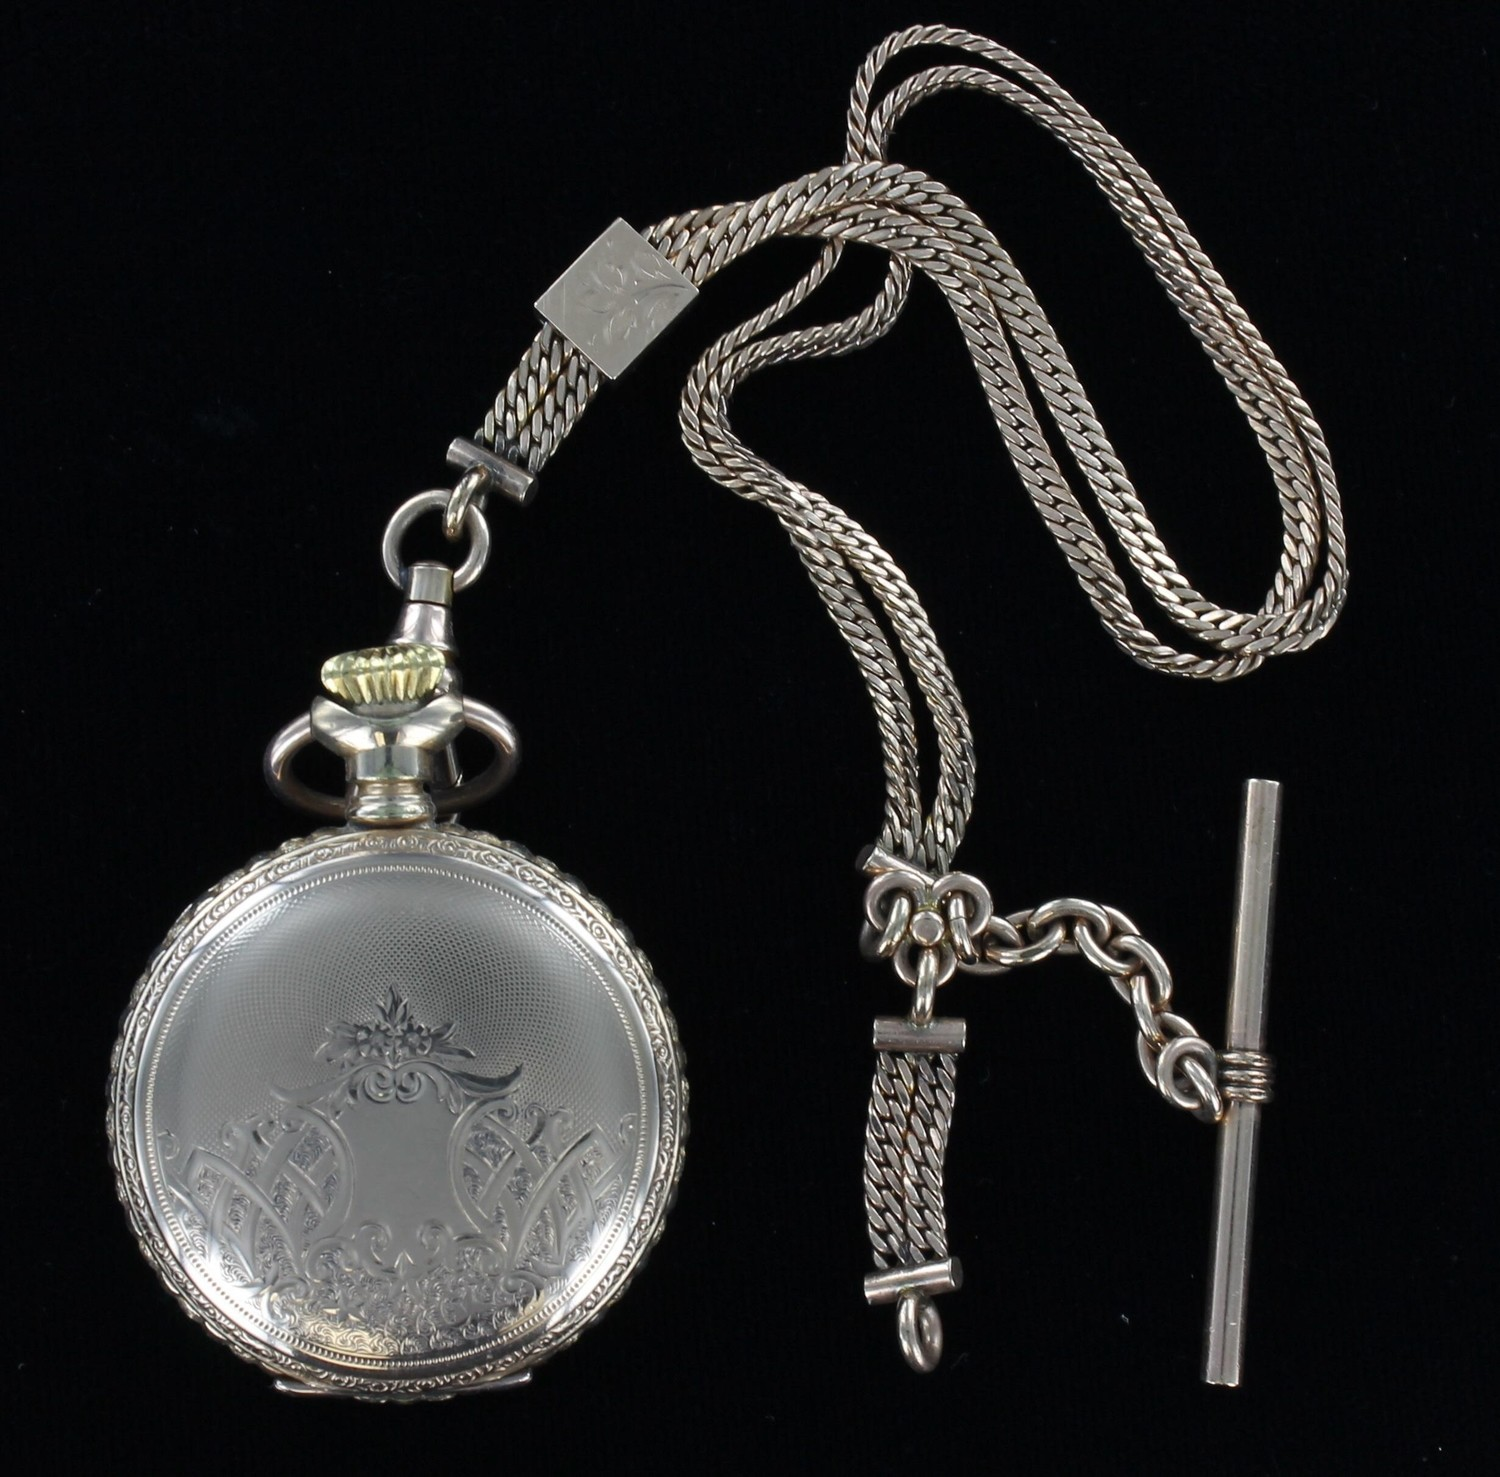 GOLD-FILLED POCKET WATCH AND CHAIN 1930